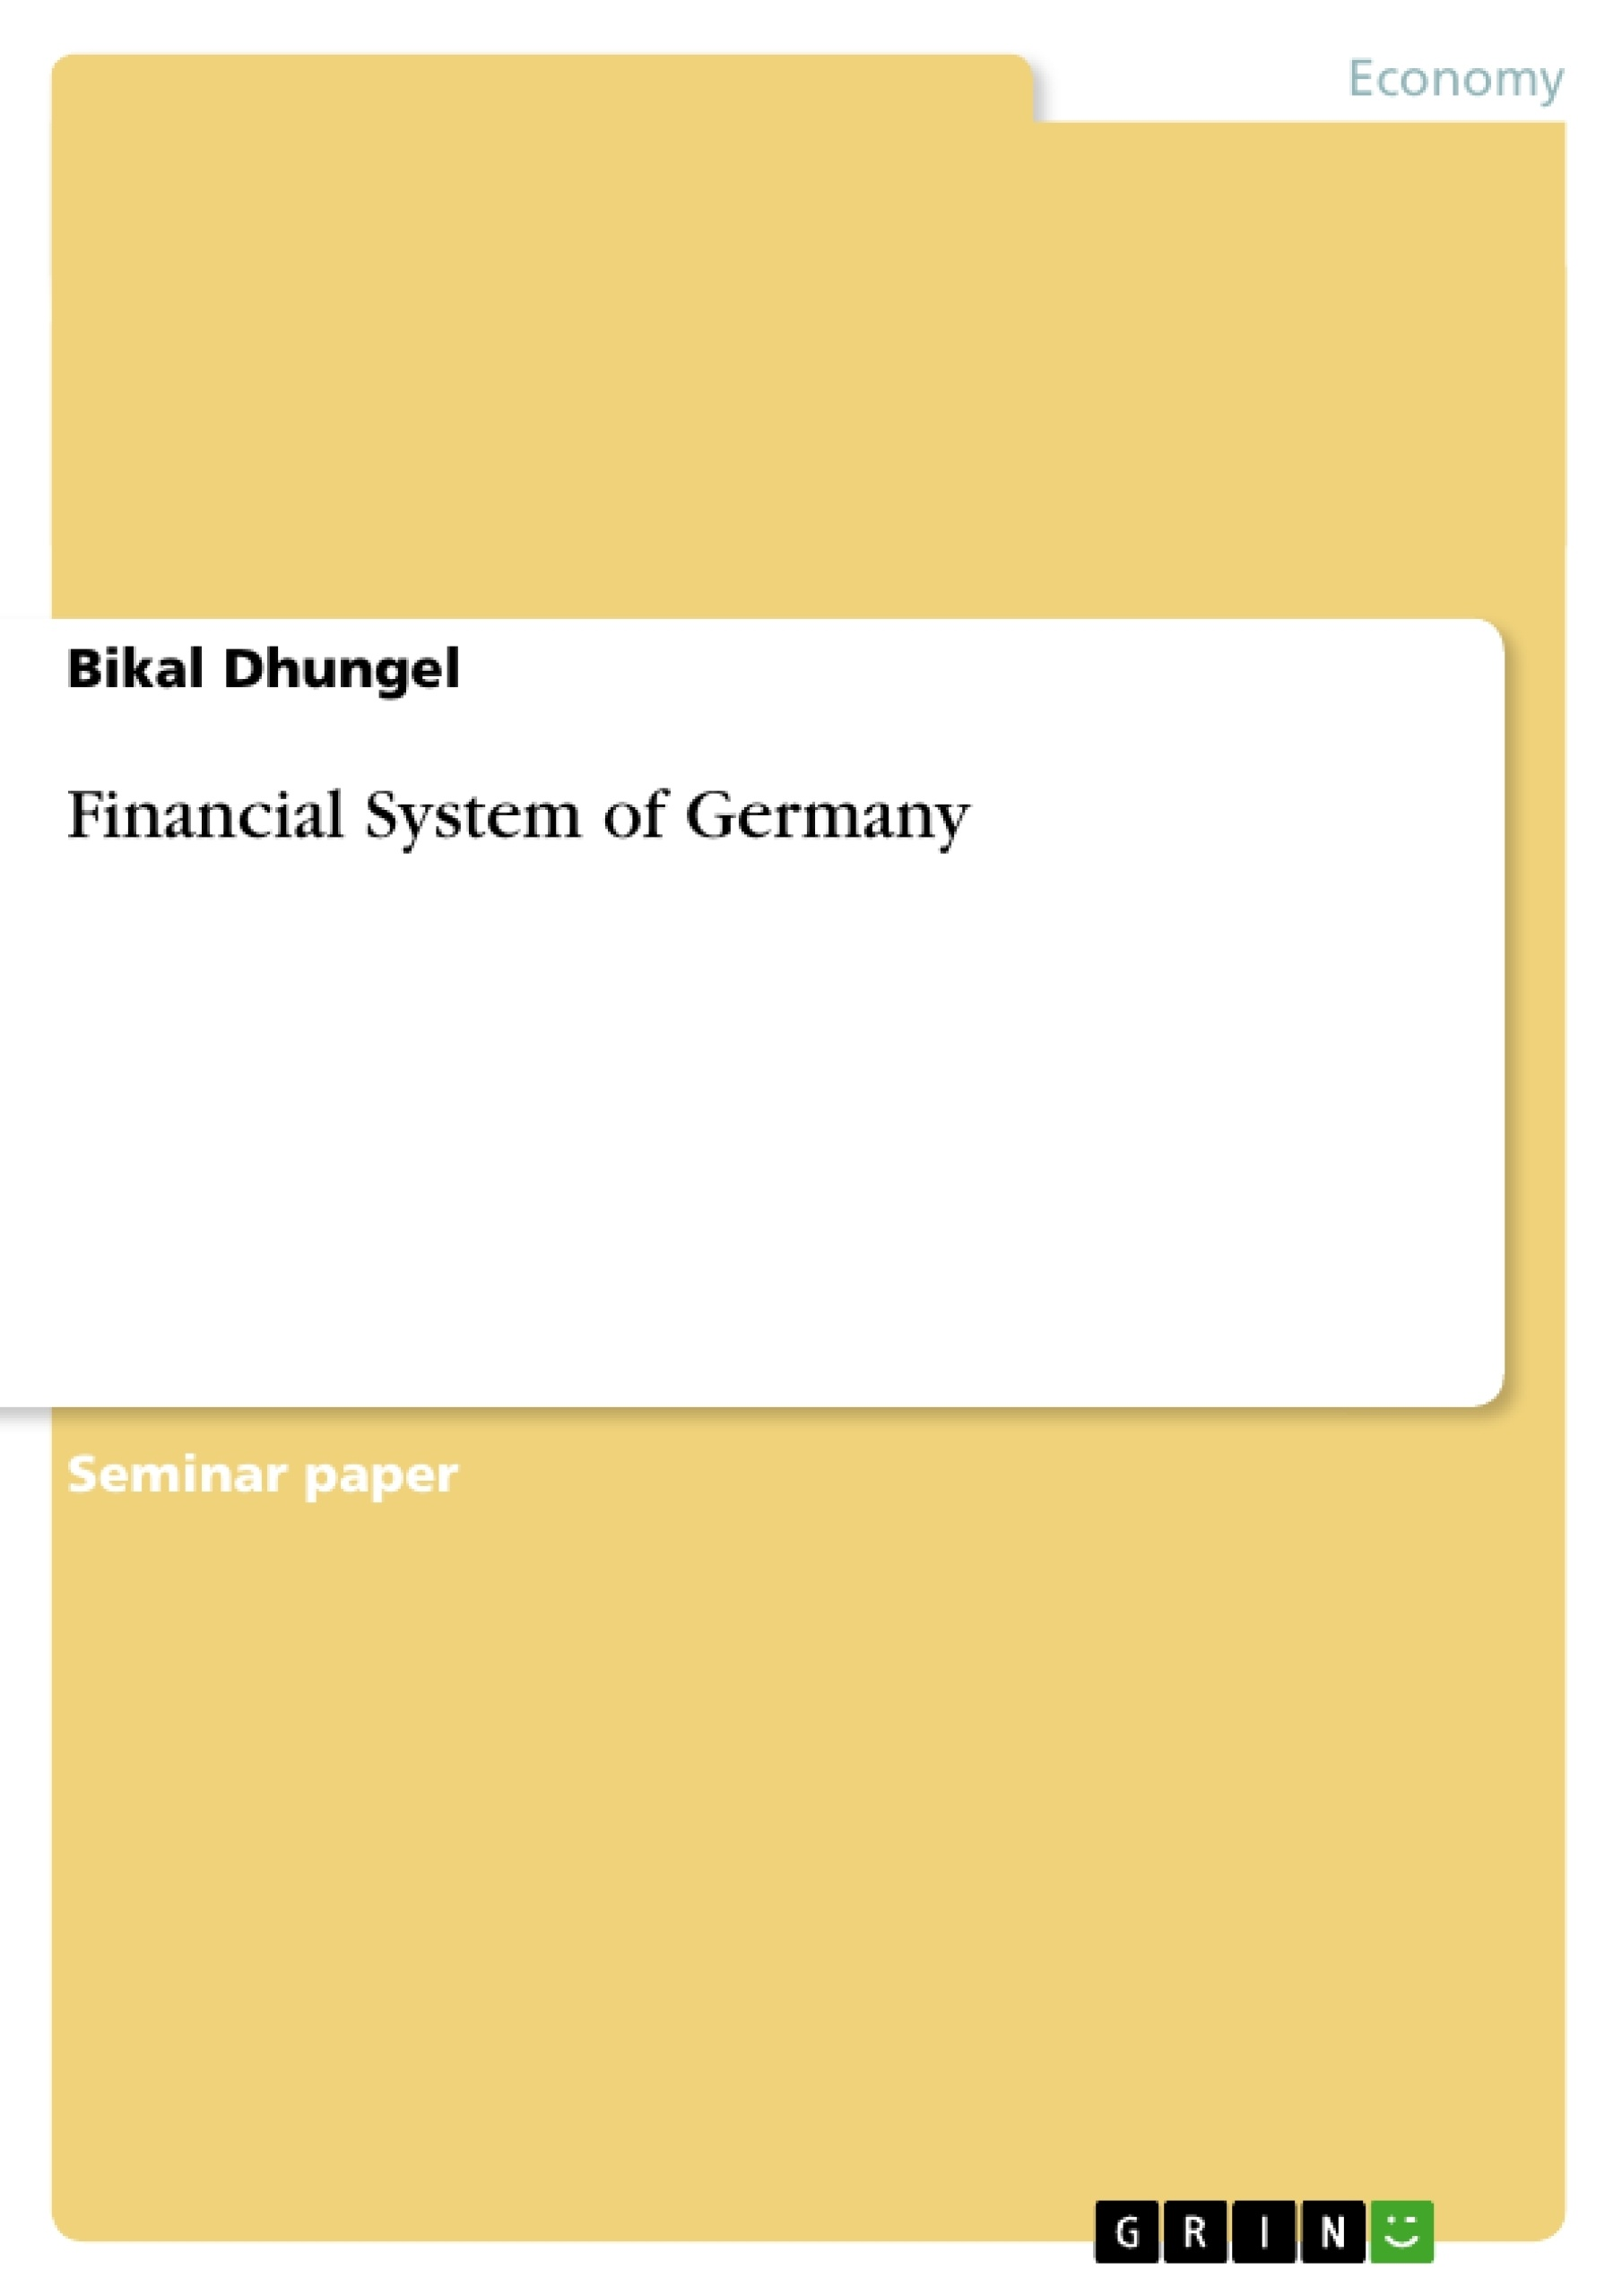 Title: Financial System of Germany